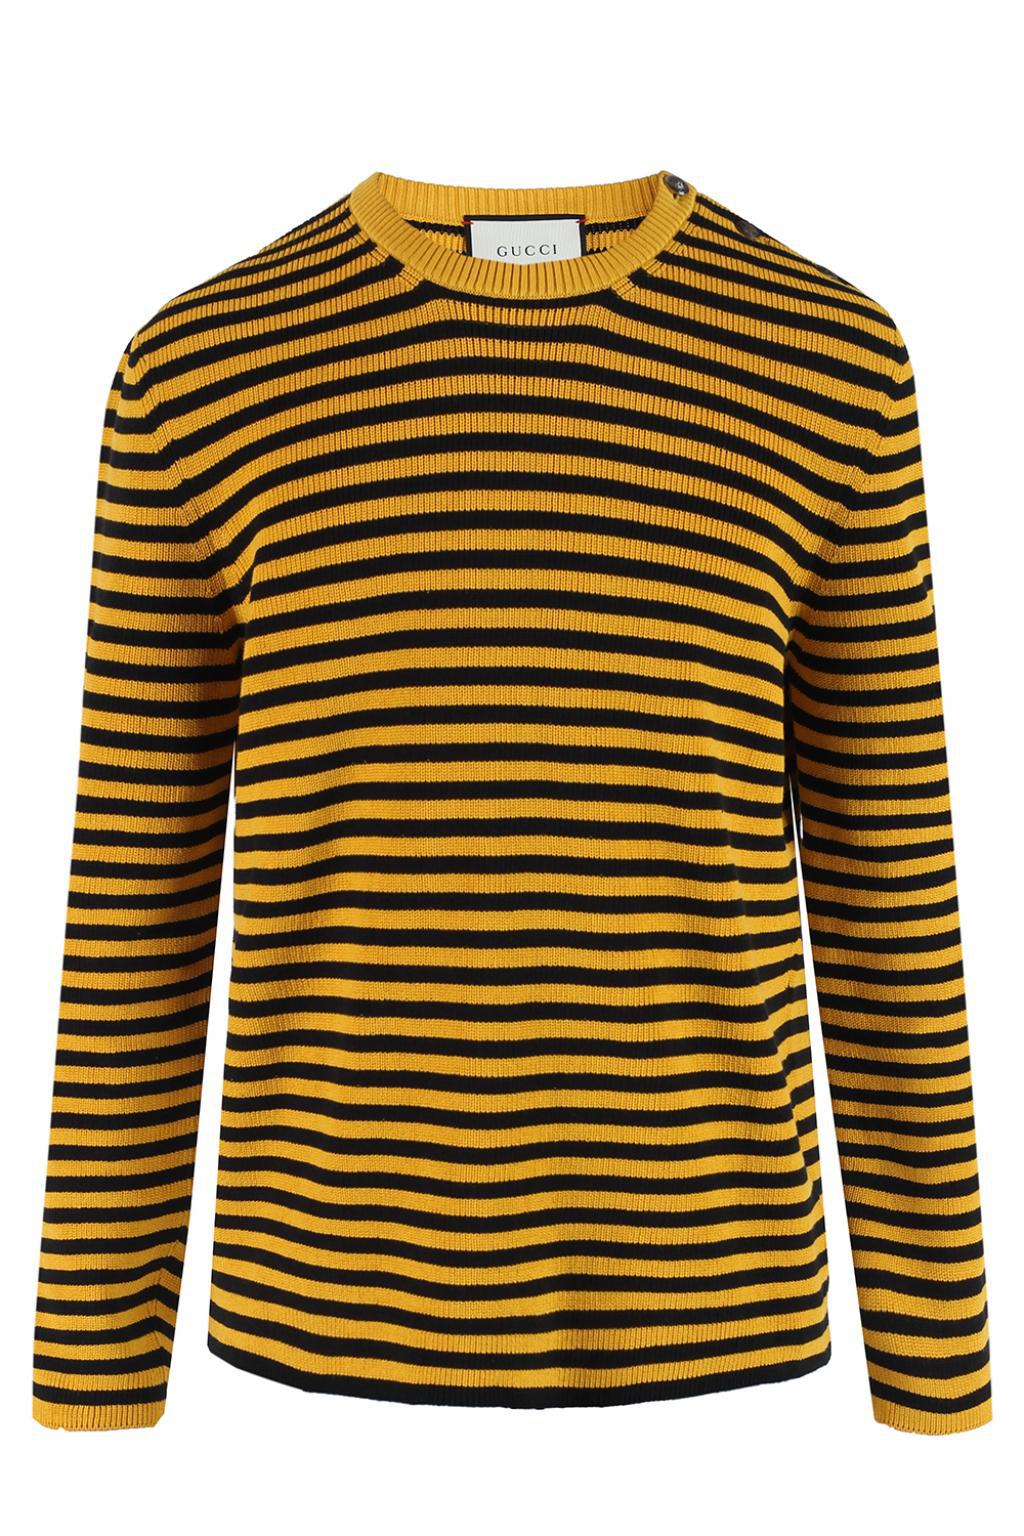 Lyst Gucci Striped Sweater For Men